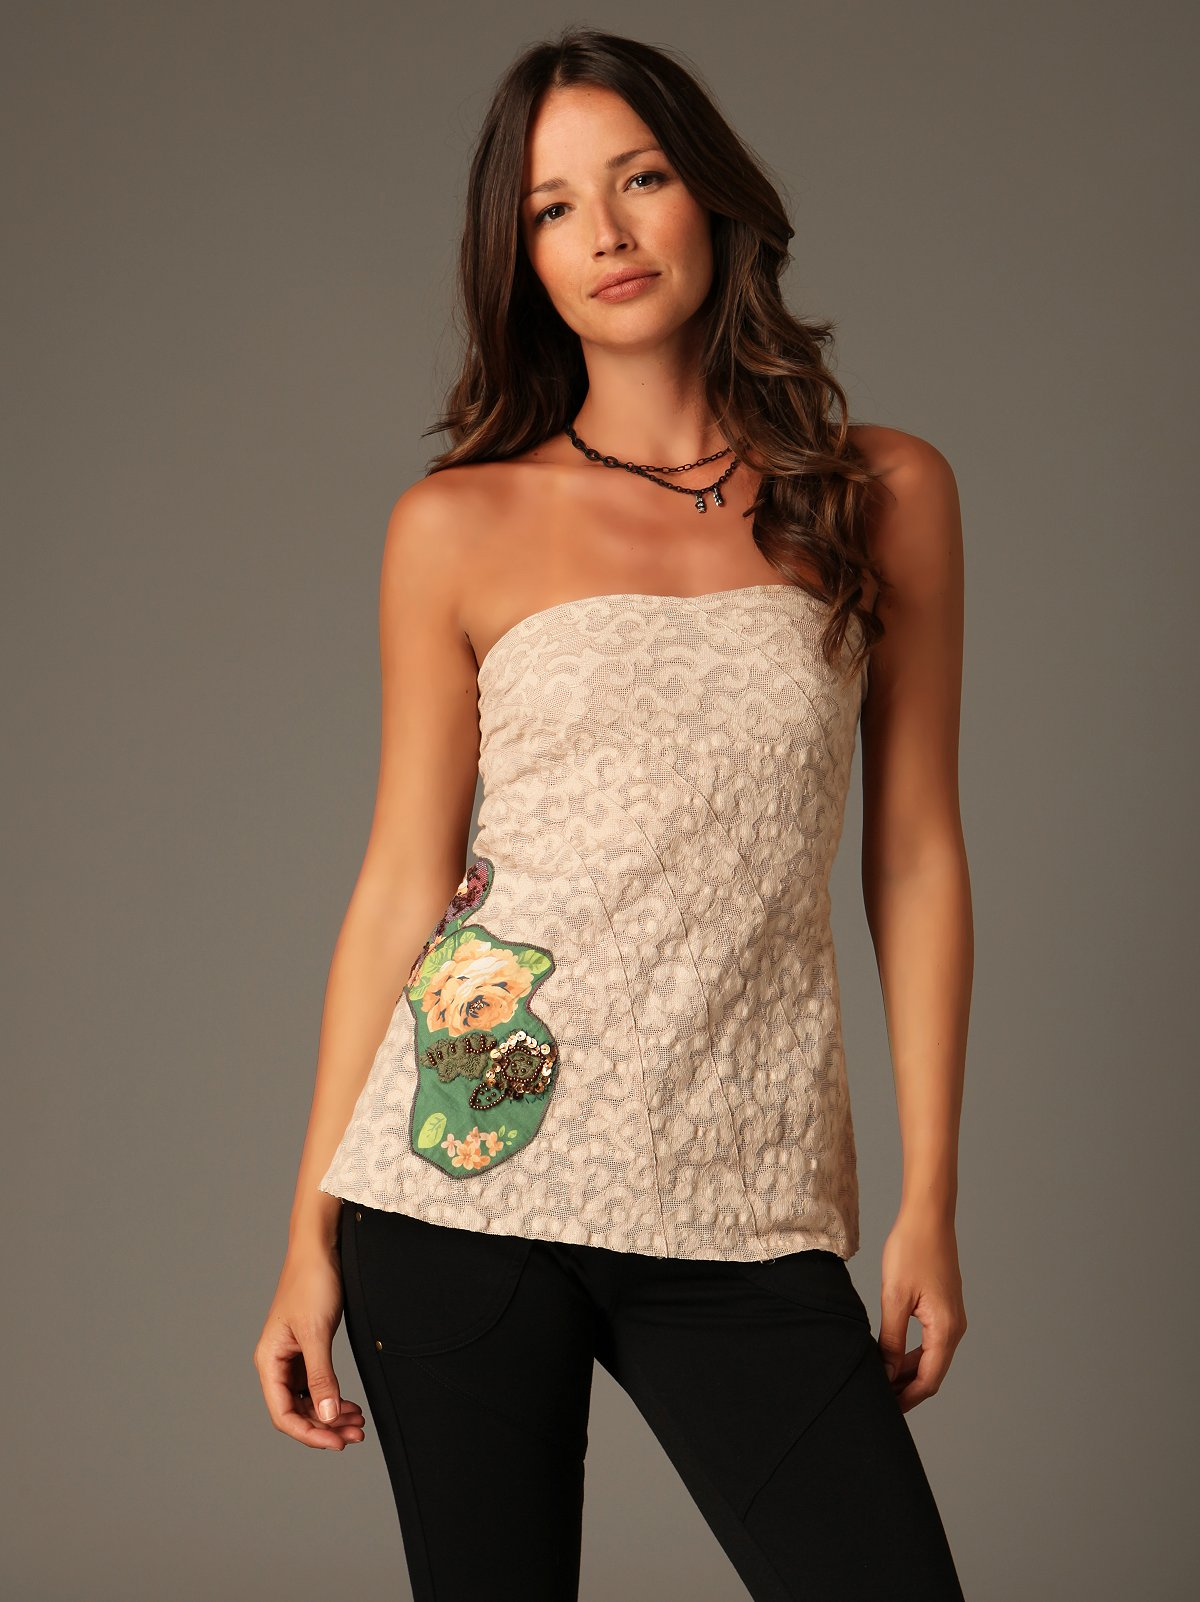 De Tierra Applique Tube Top